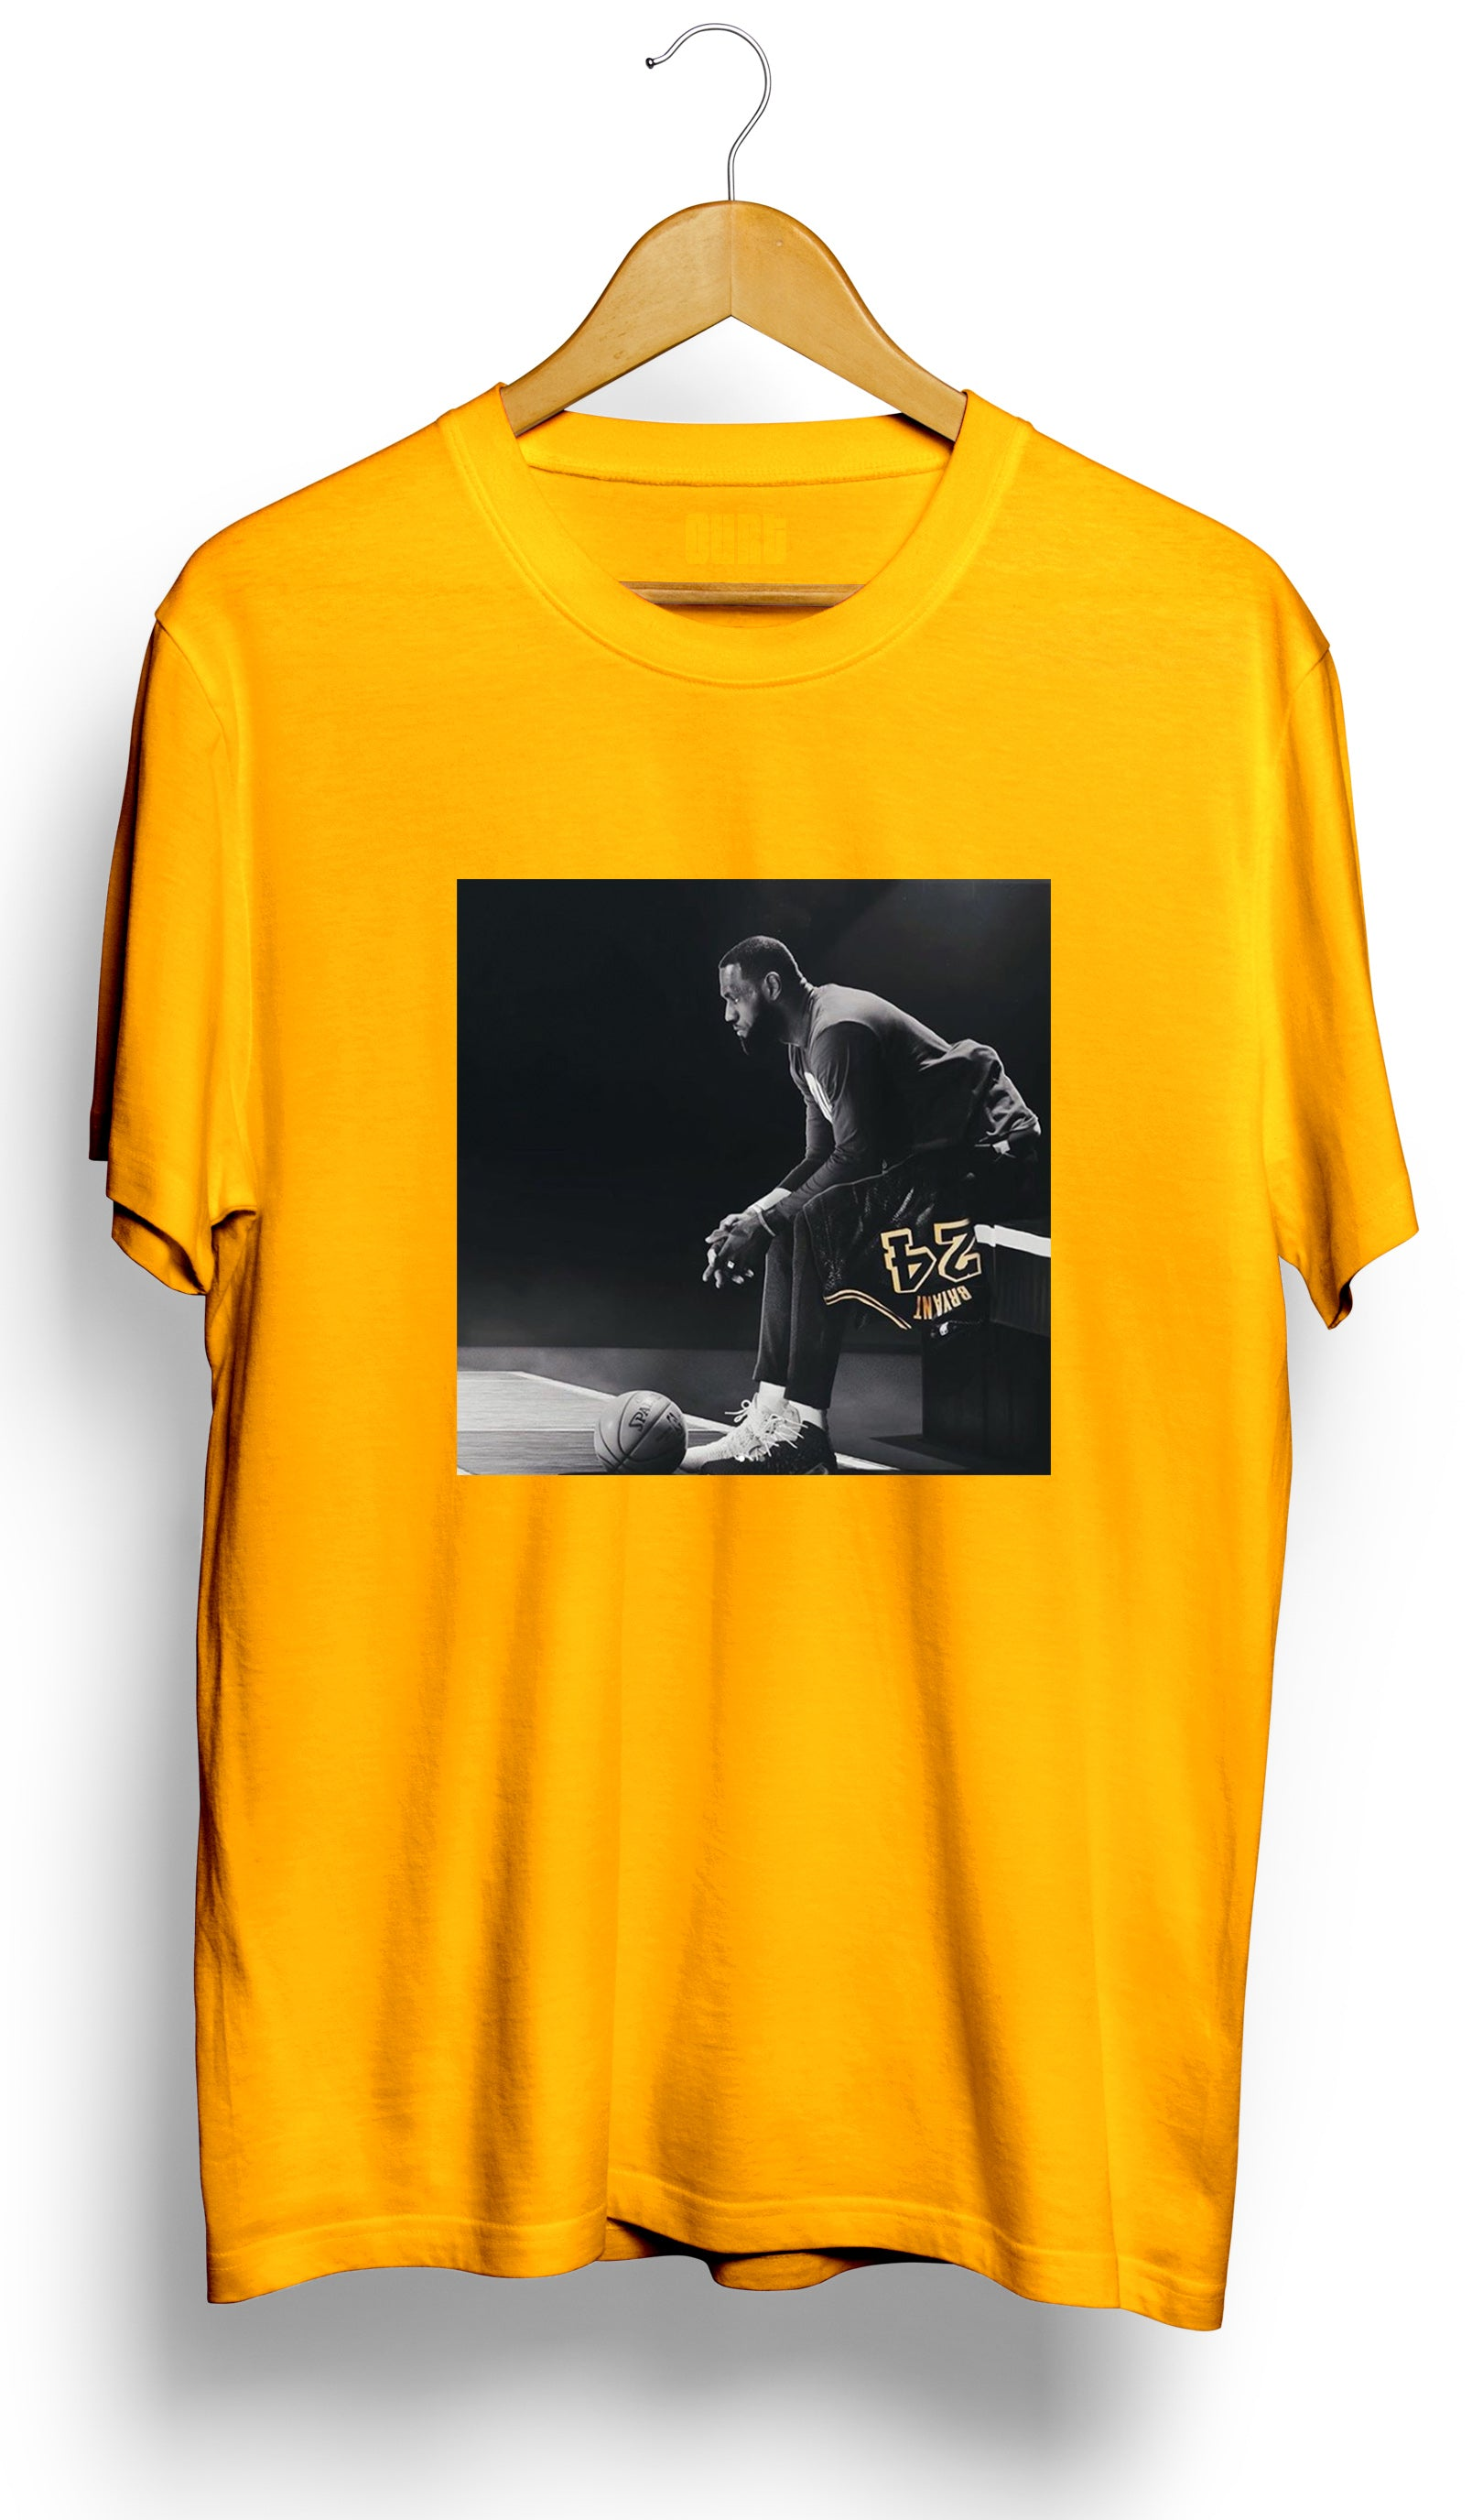 Lebron James | Kobe Bryant | Lakers Championship T-shirt